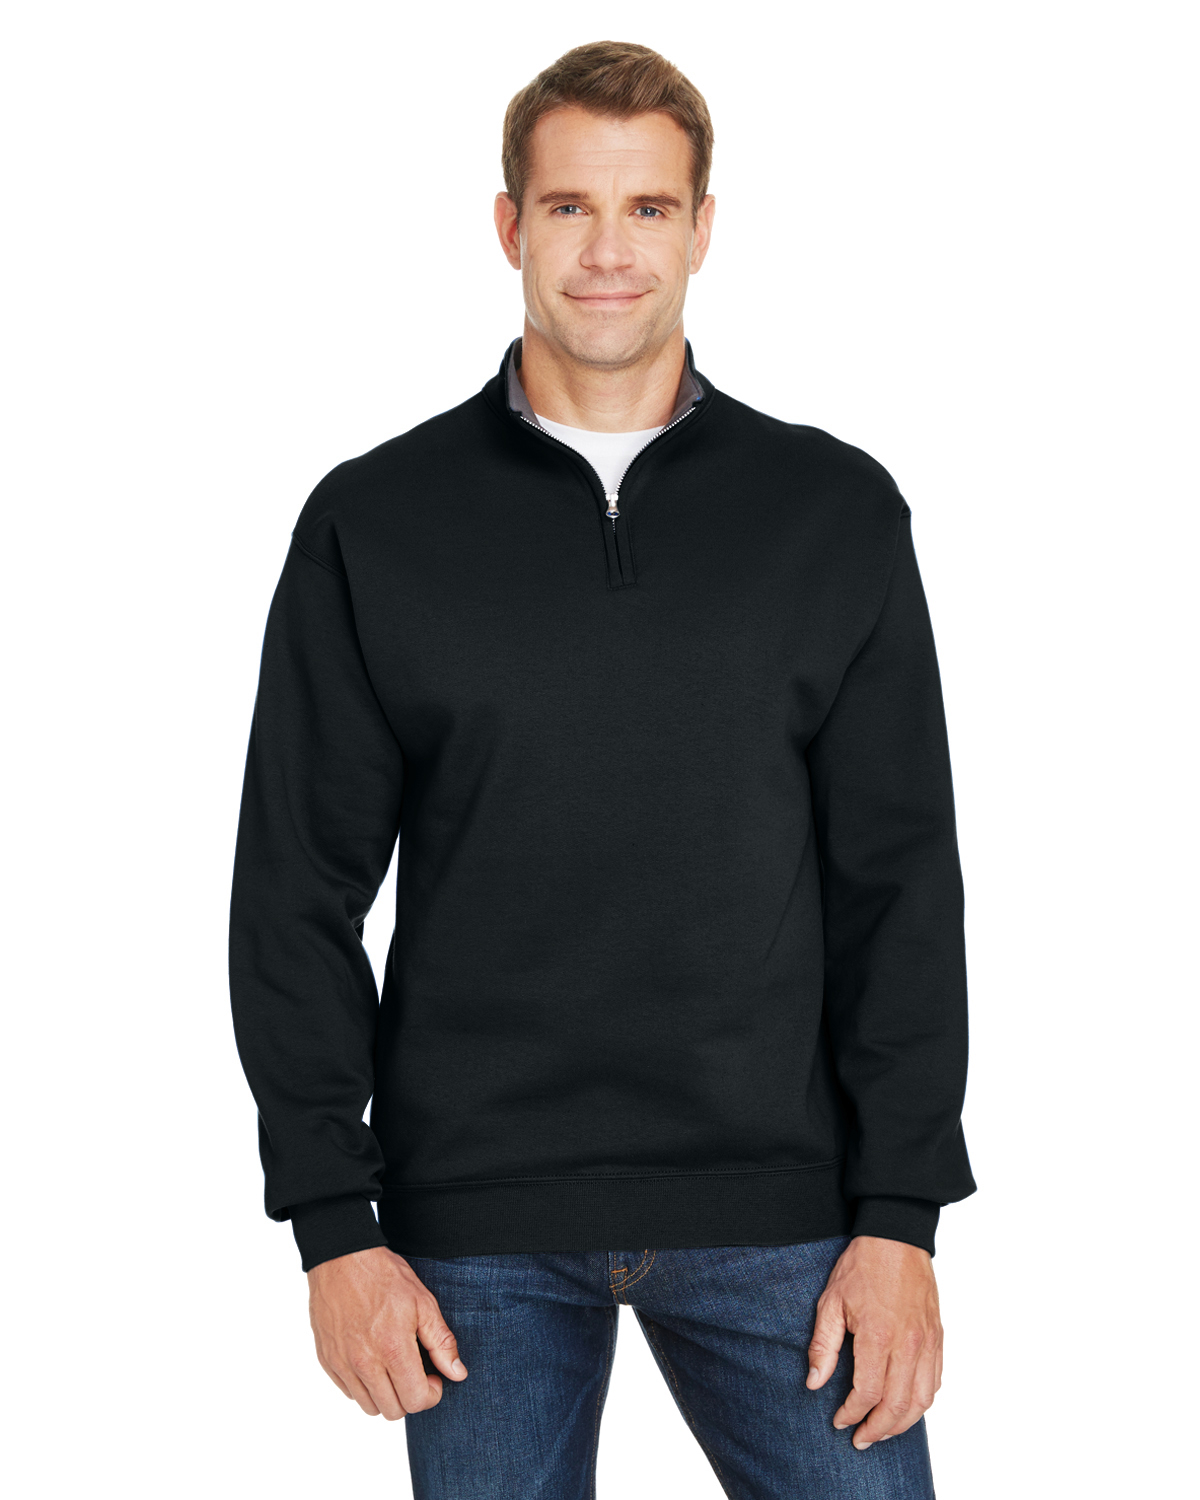 Fruit of the Loom SF95R - Adult Sofspun Quarter-Zip ...